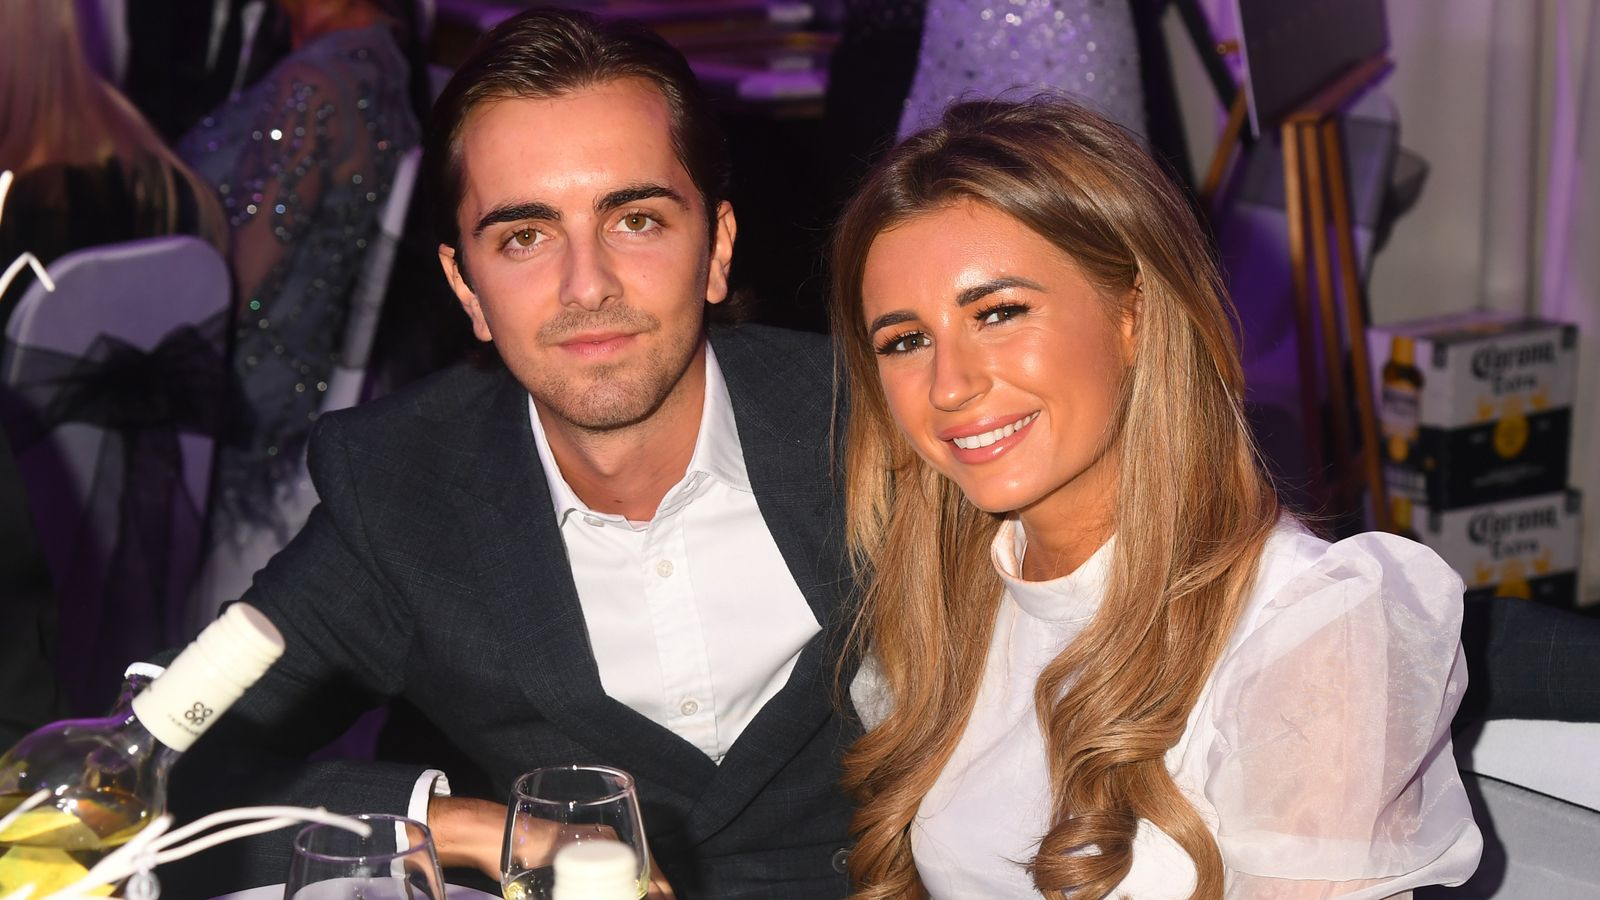 Love Island star Dani Dyer pregnant with first child